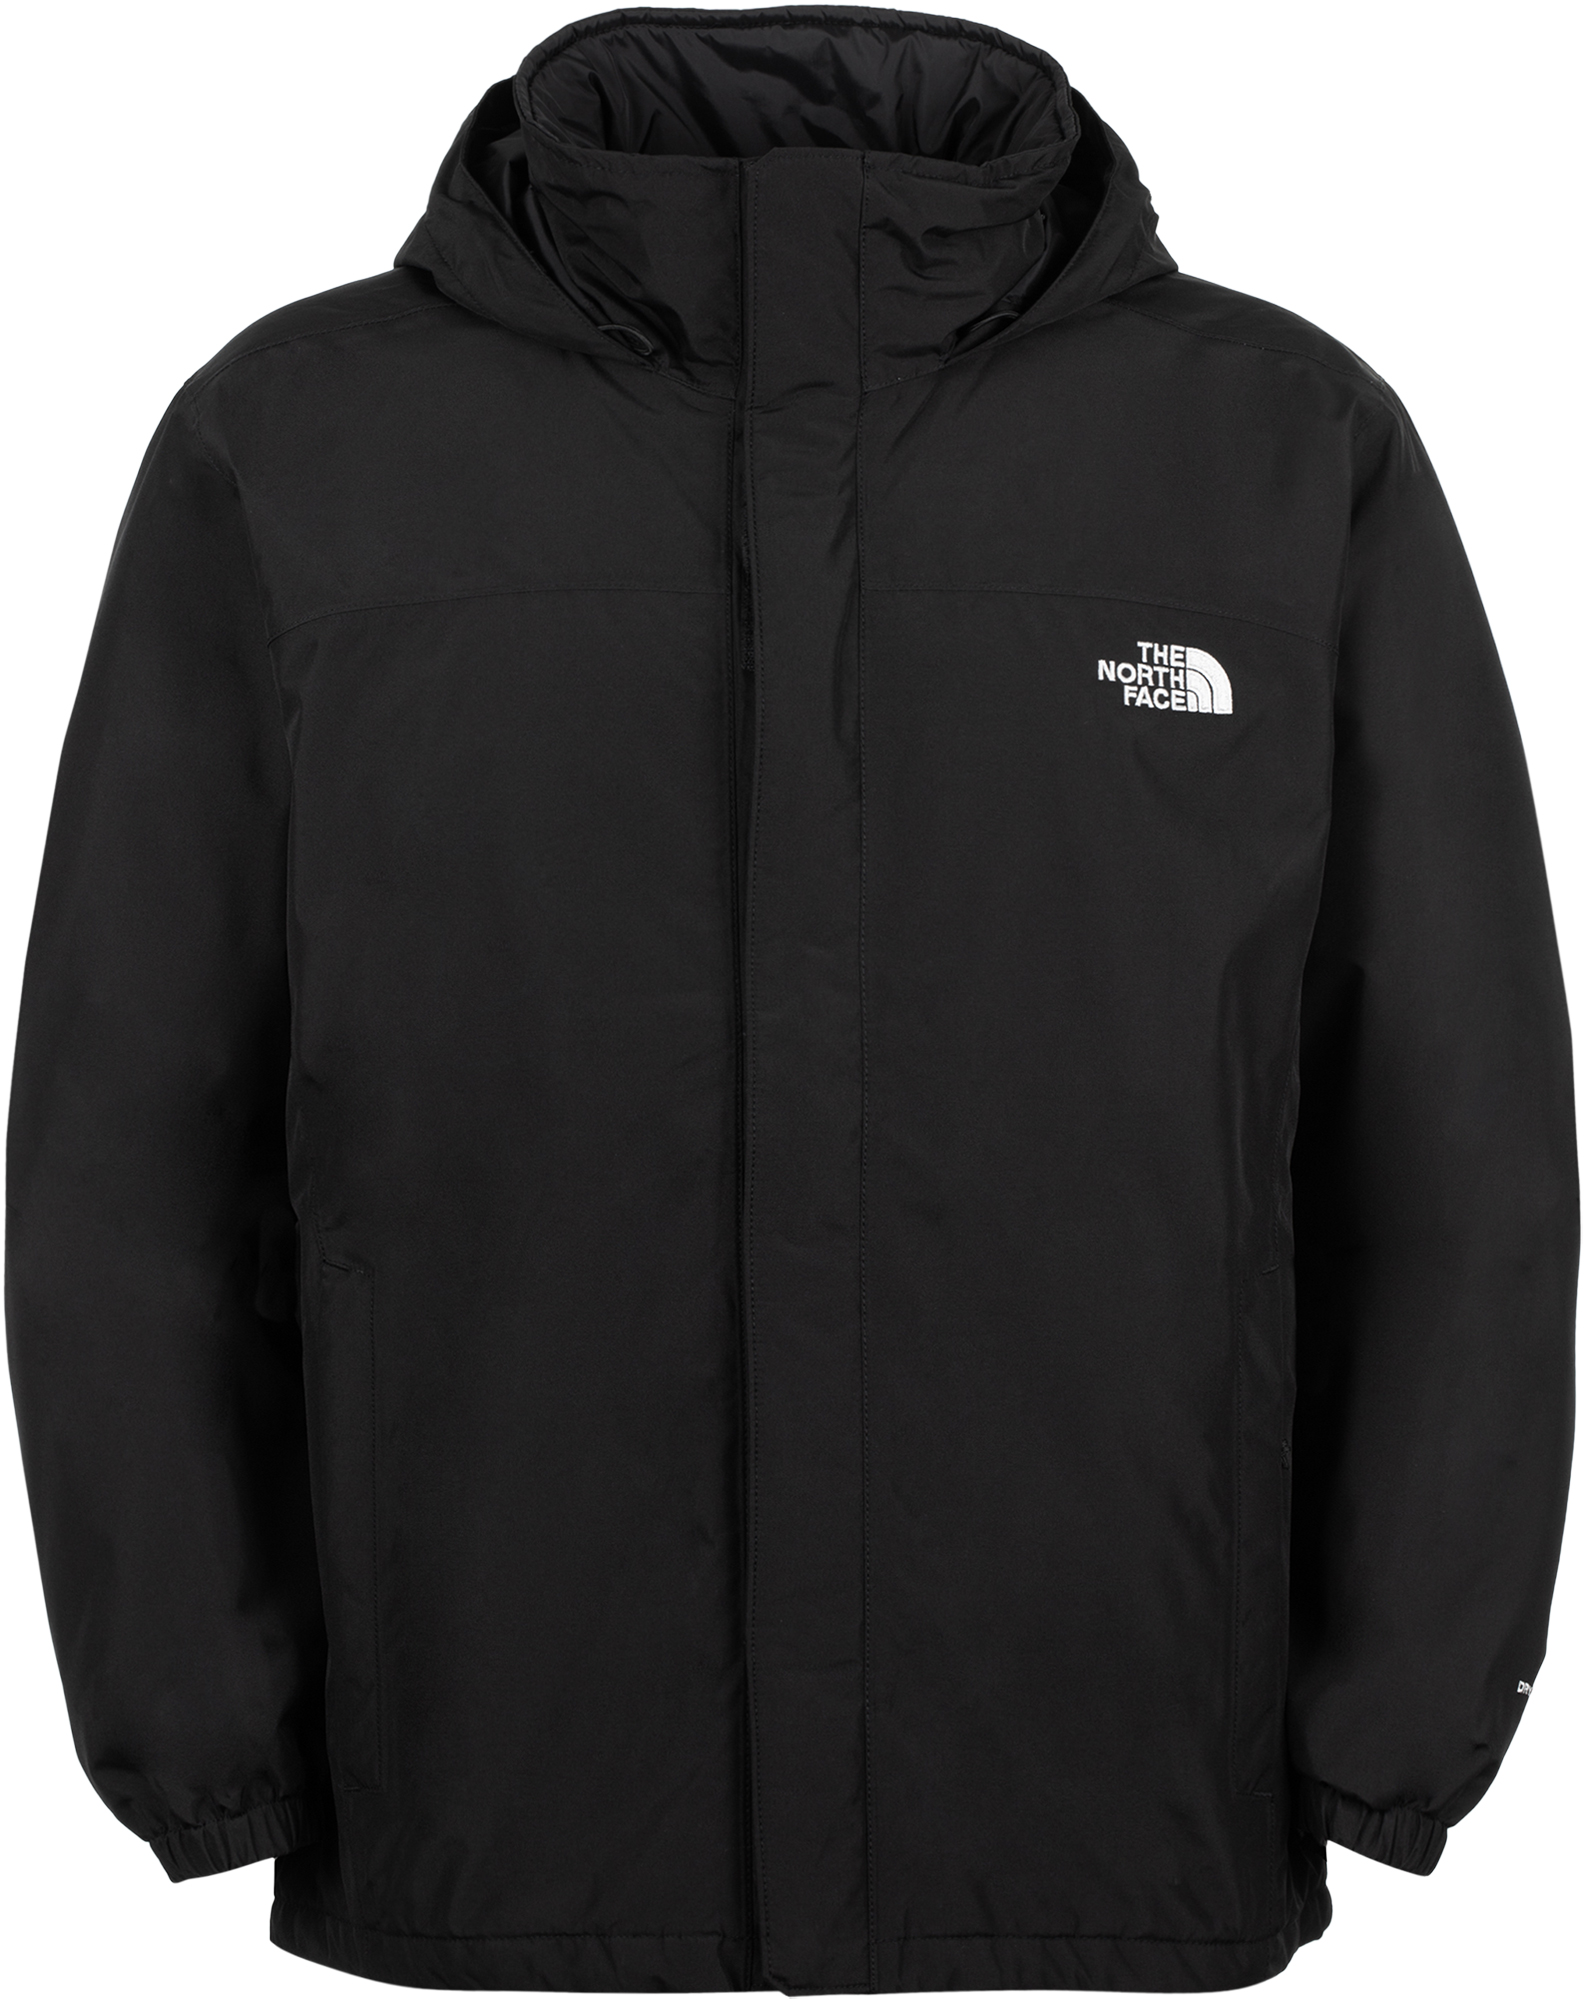 The North Face Куртка утепленная мужская The North Face Resolve Insulated, размер 52